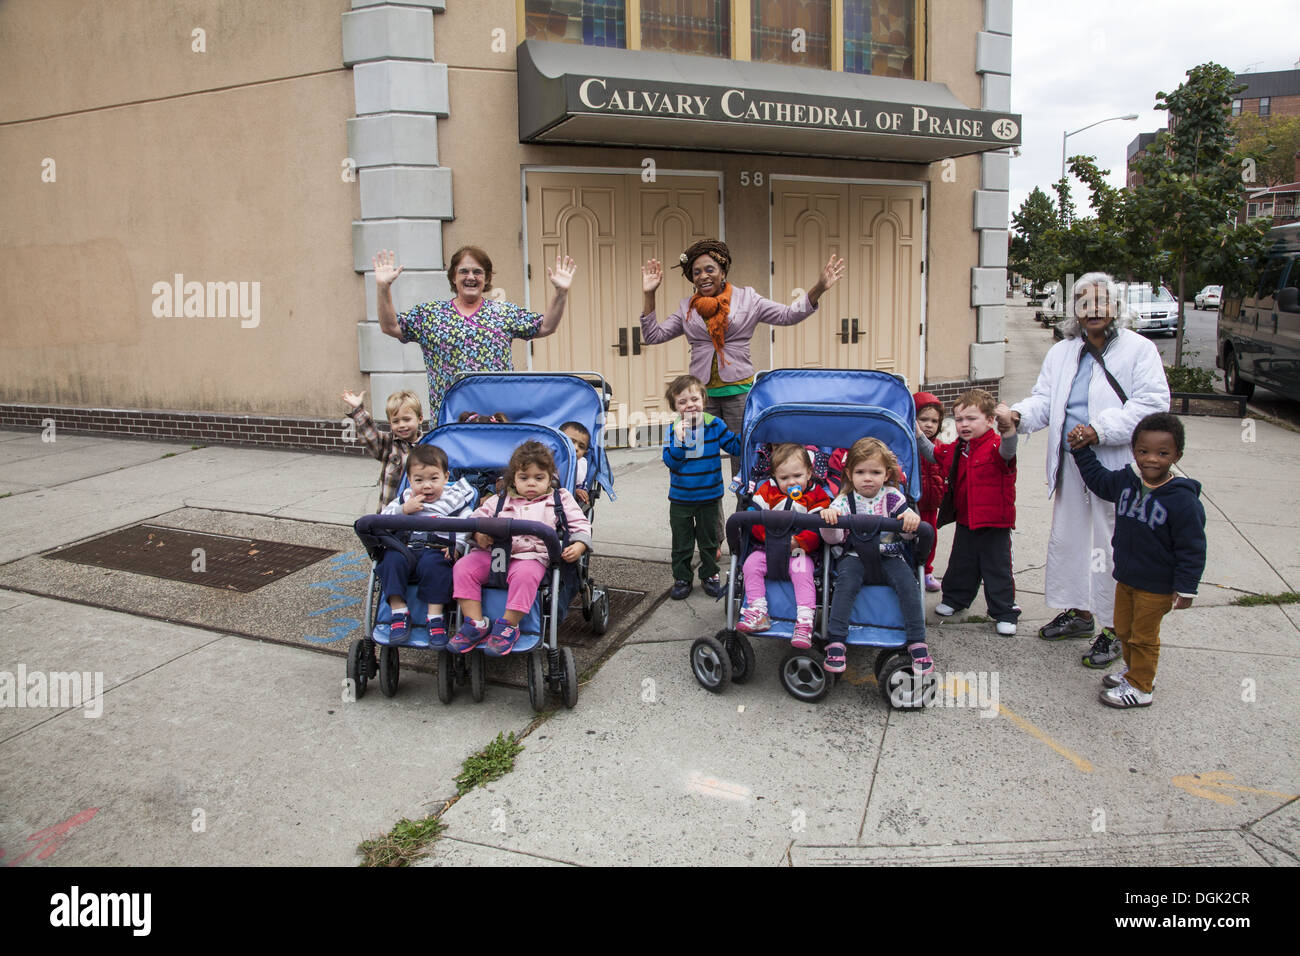 Nursery school group out in the neighborhood on a warm autumn day, Brooklyn, NY. - Stock Image